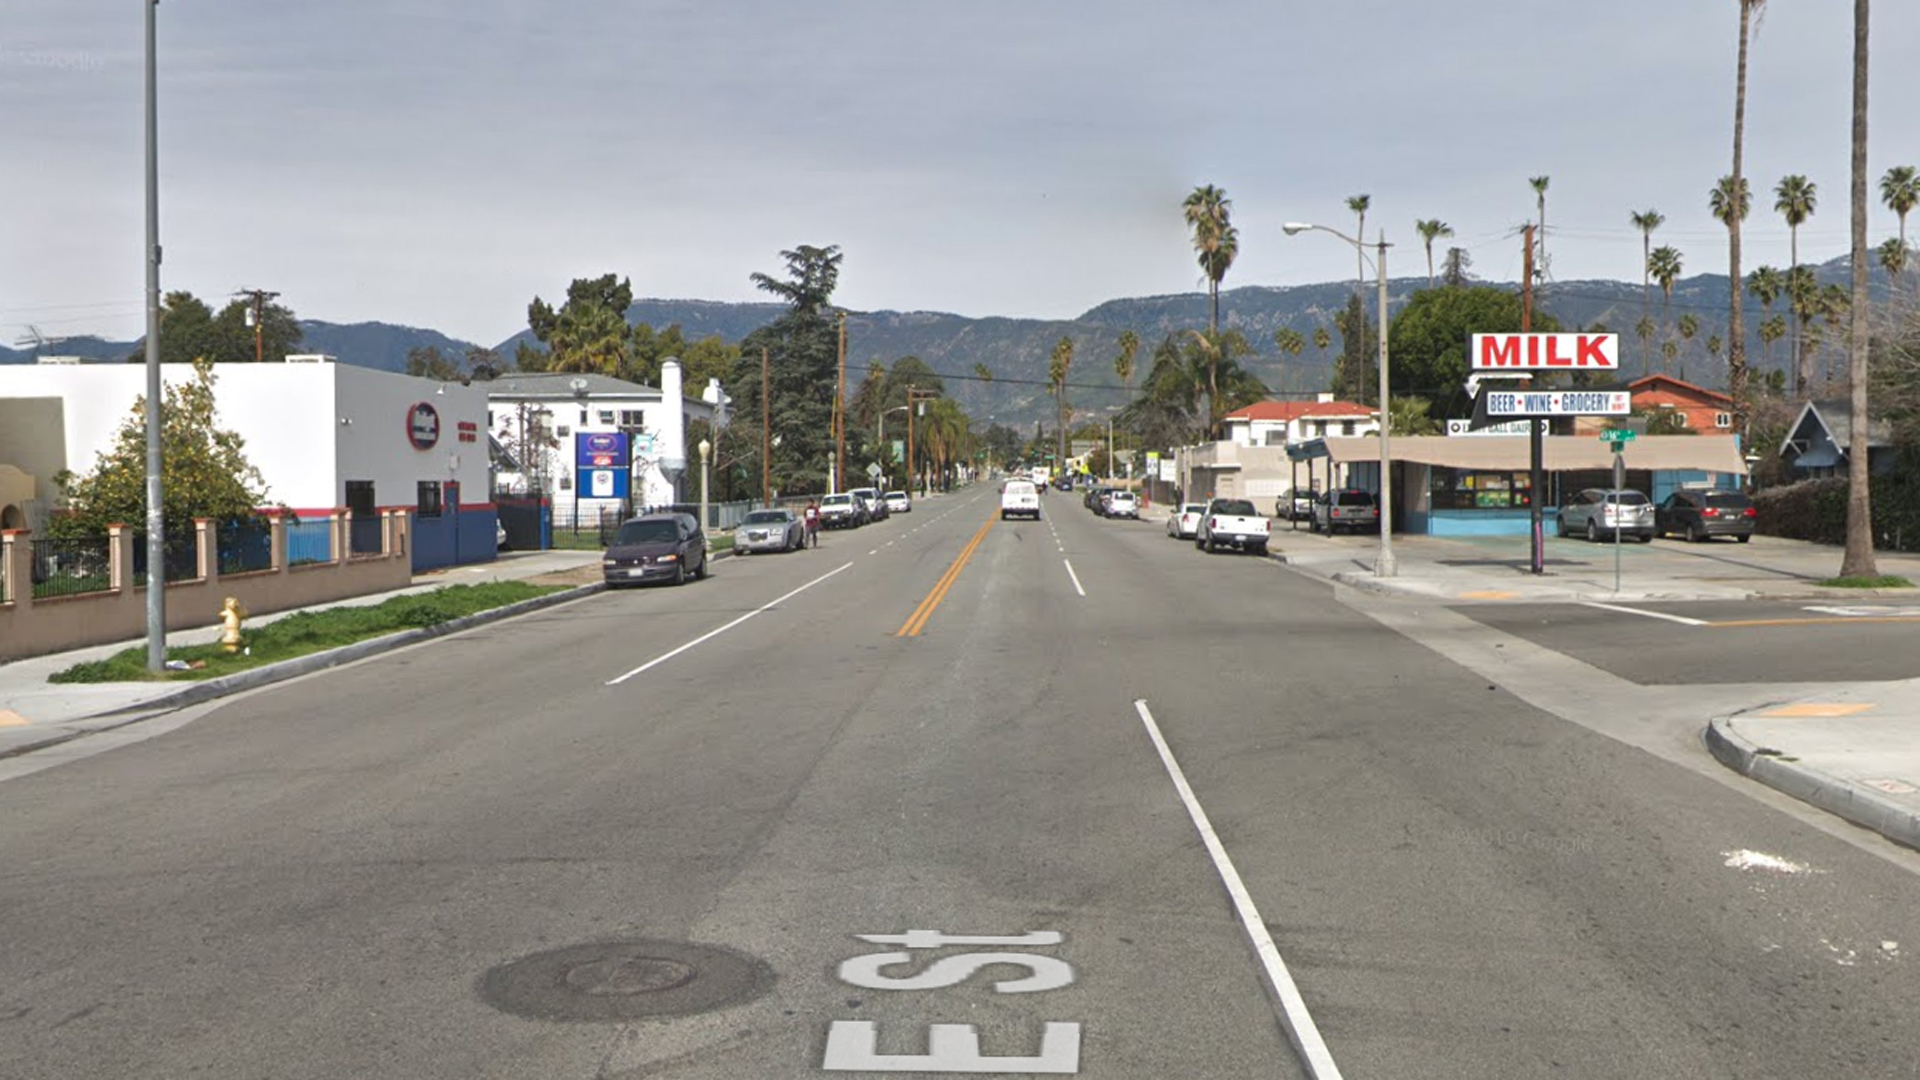 E Street, looking north from 16th Street, in San Bernardino, as pictured in a Google Street View image.